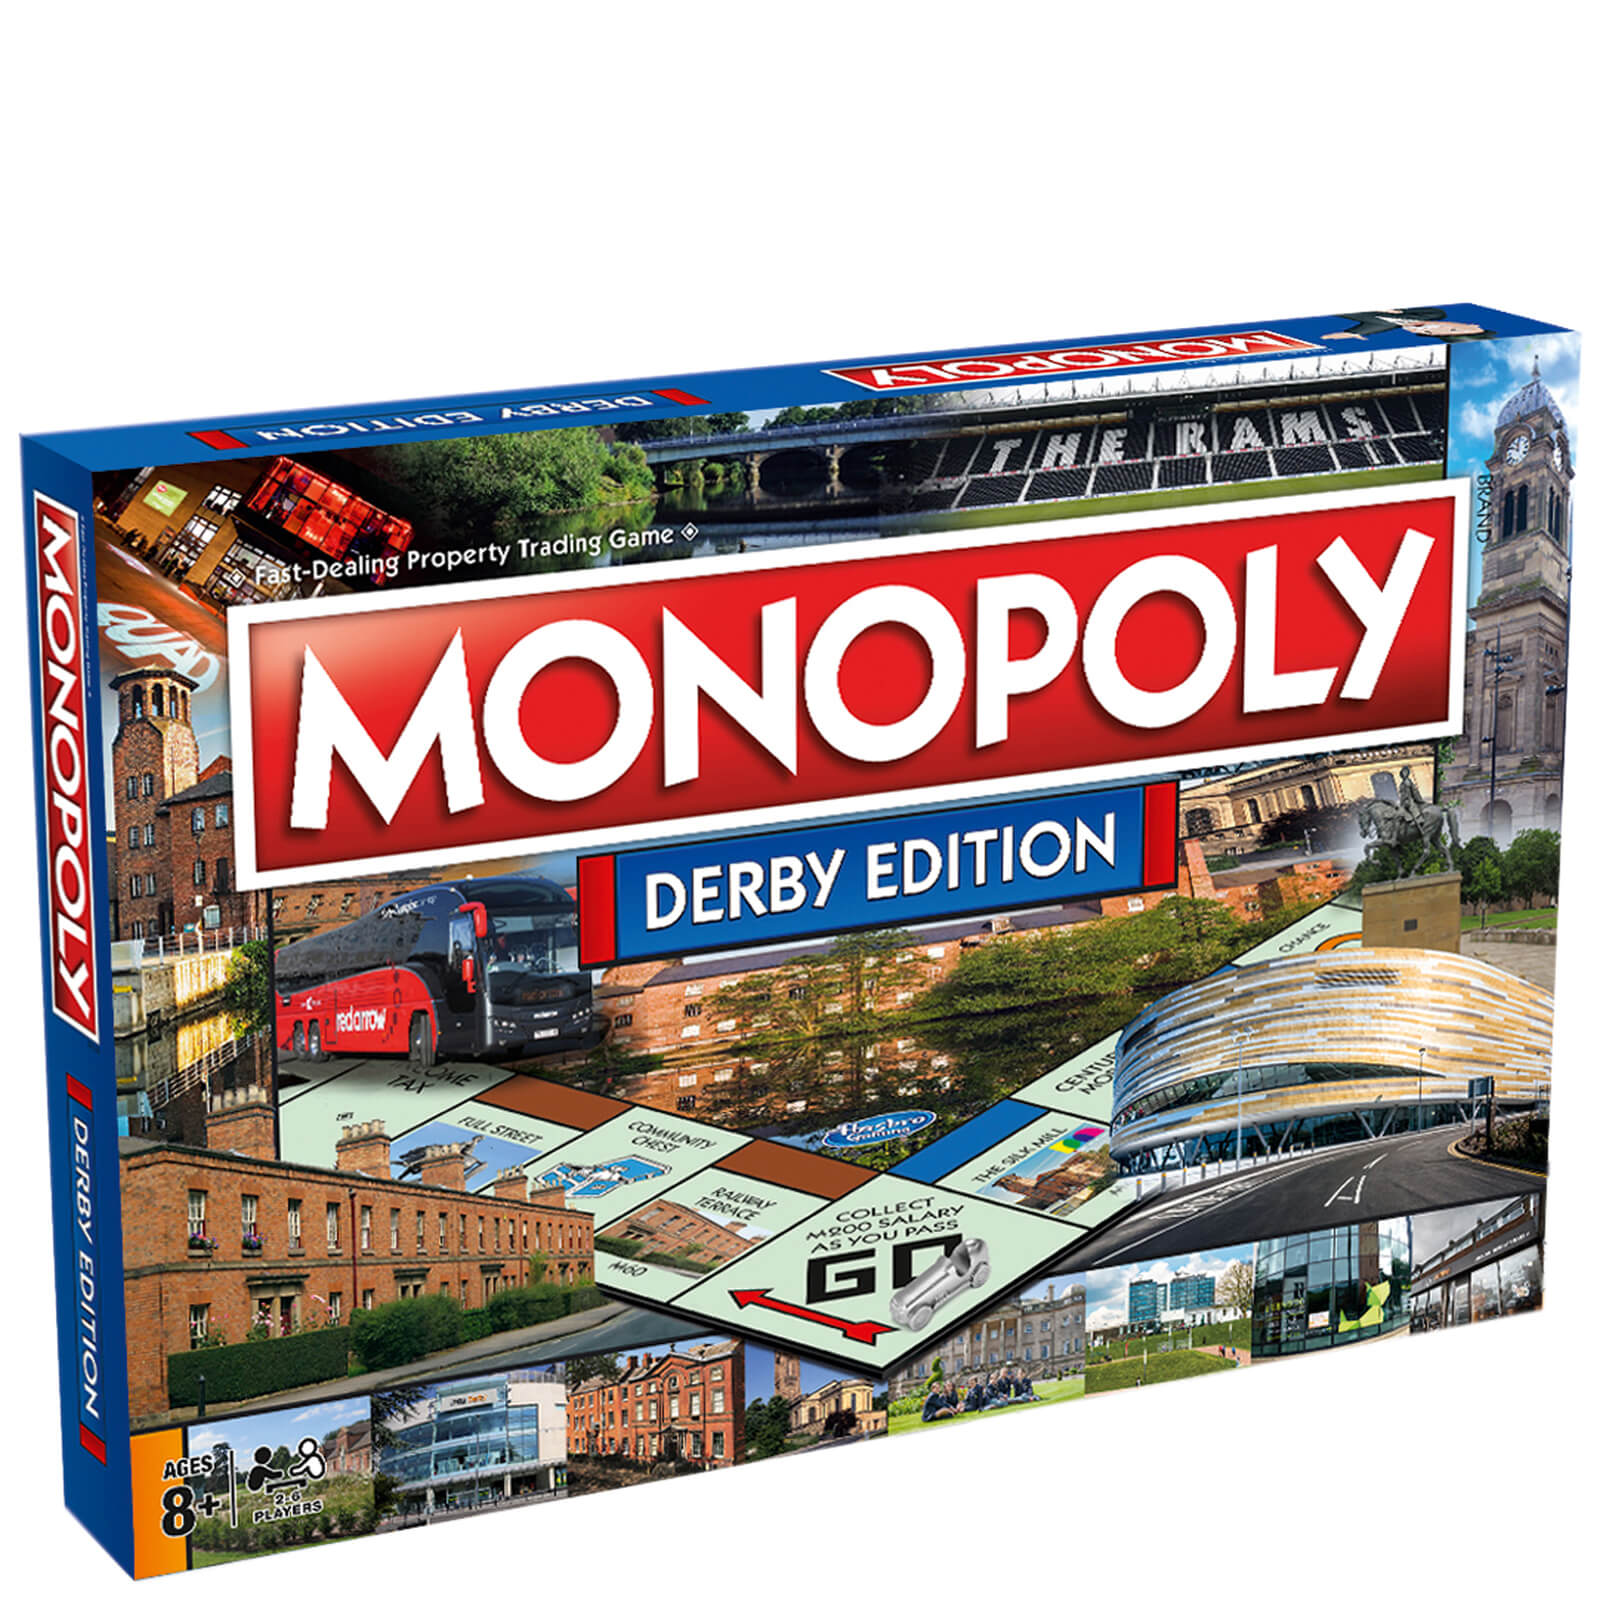 Image of Monopoly Board Game - Derby Edition